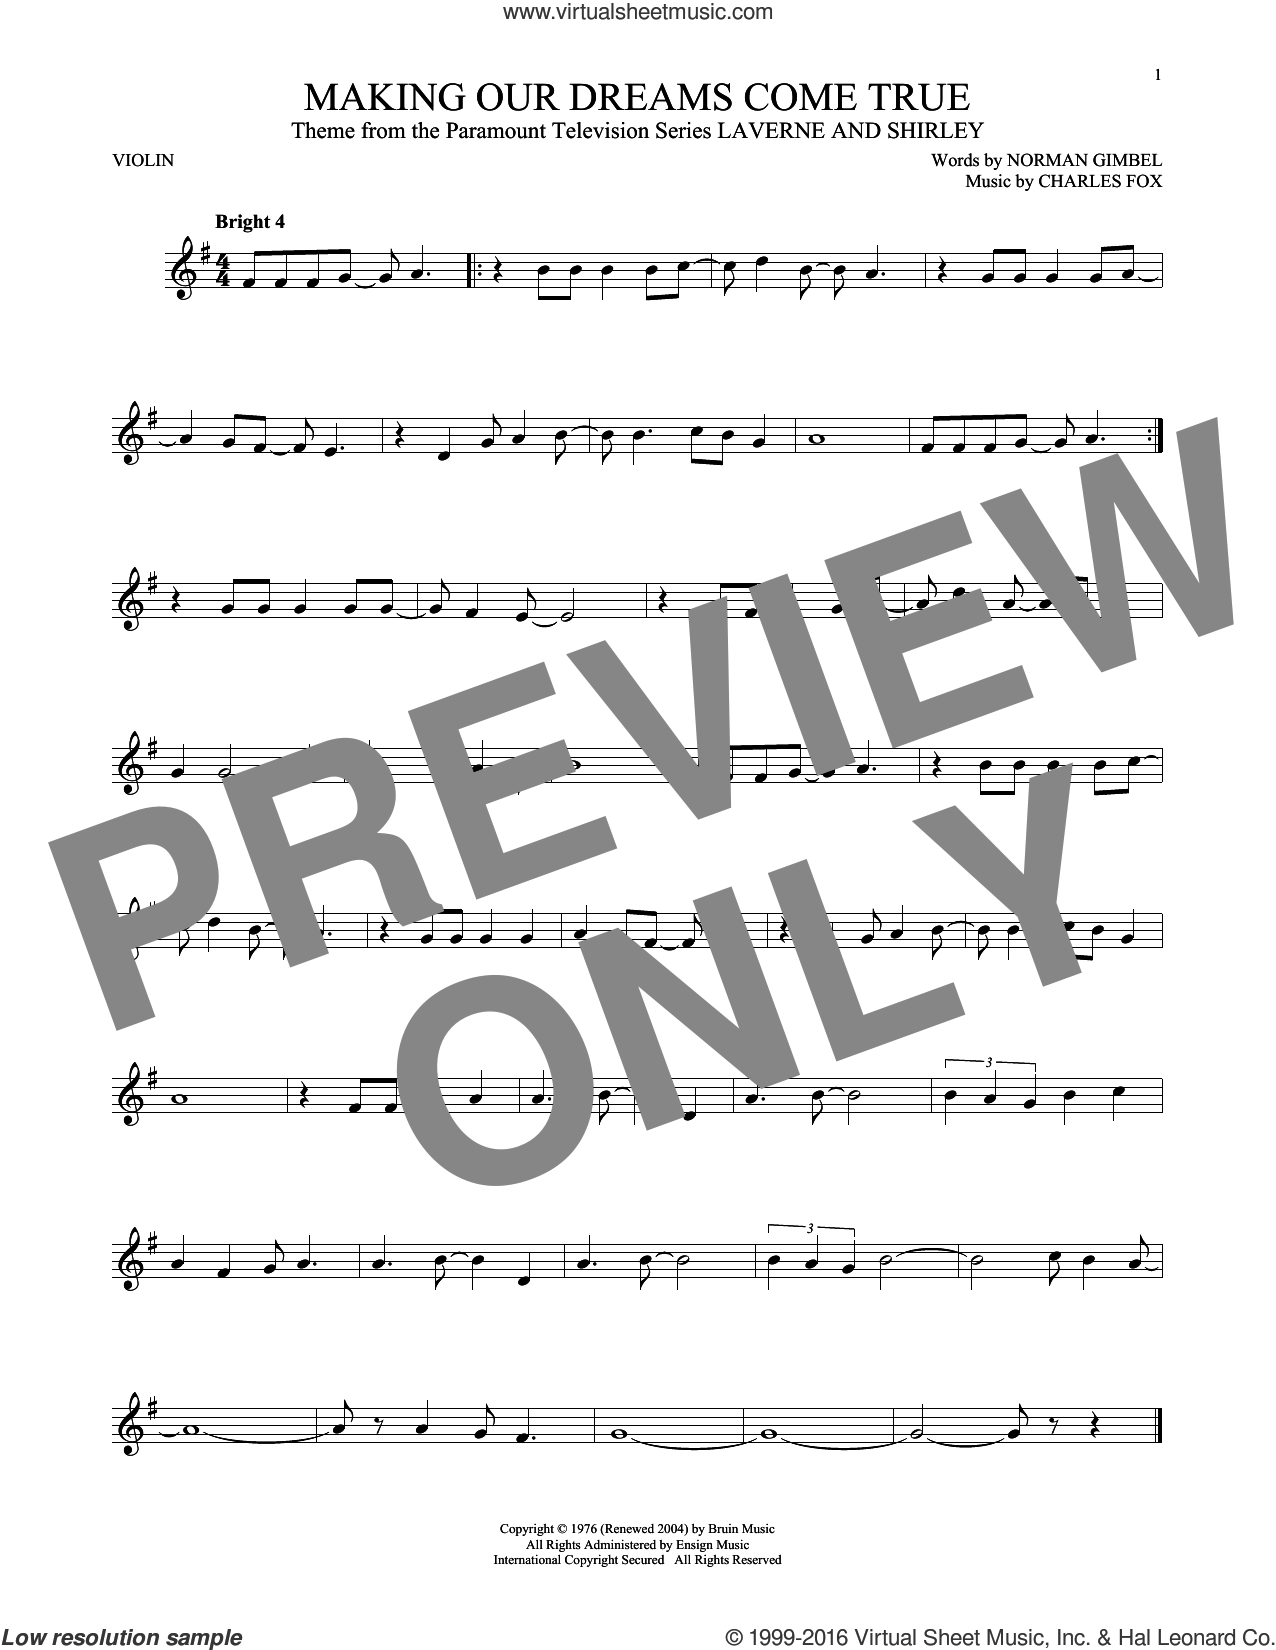 Making Our Dreams Come True sheet music for violin solo by Norman Gimbel, Charles Fox and Norman Gimbel & Charles Fox, intermediate skill level